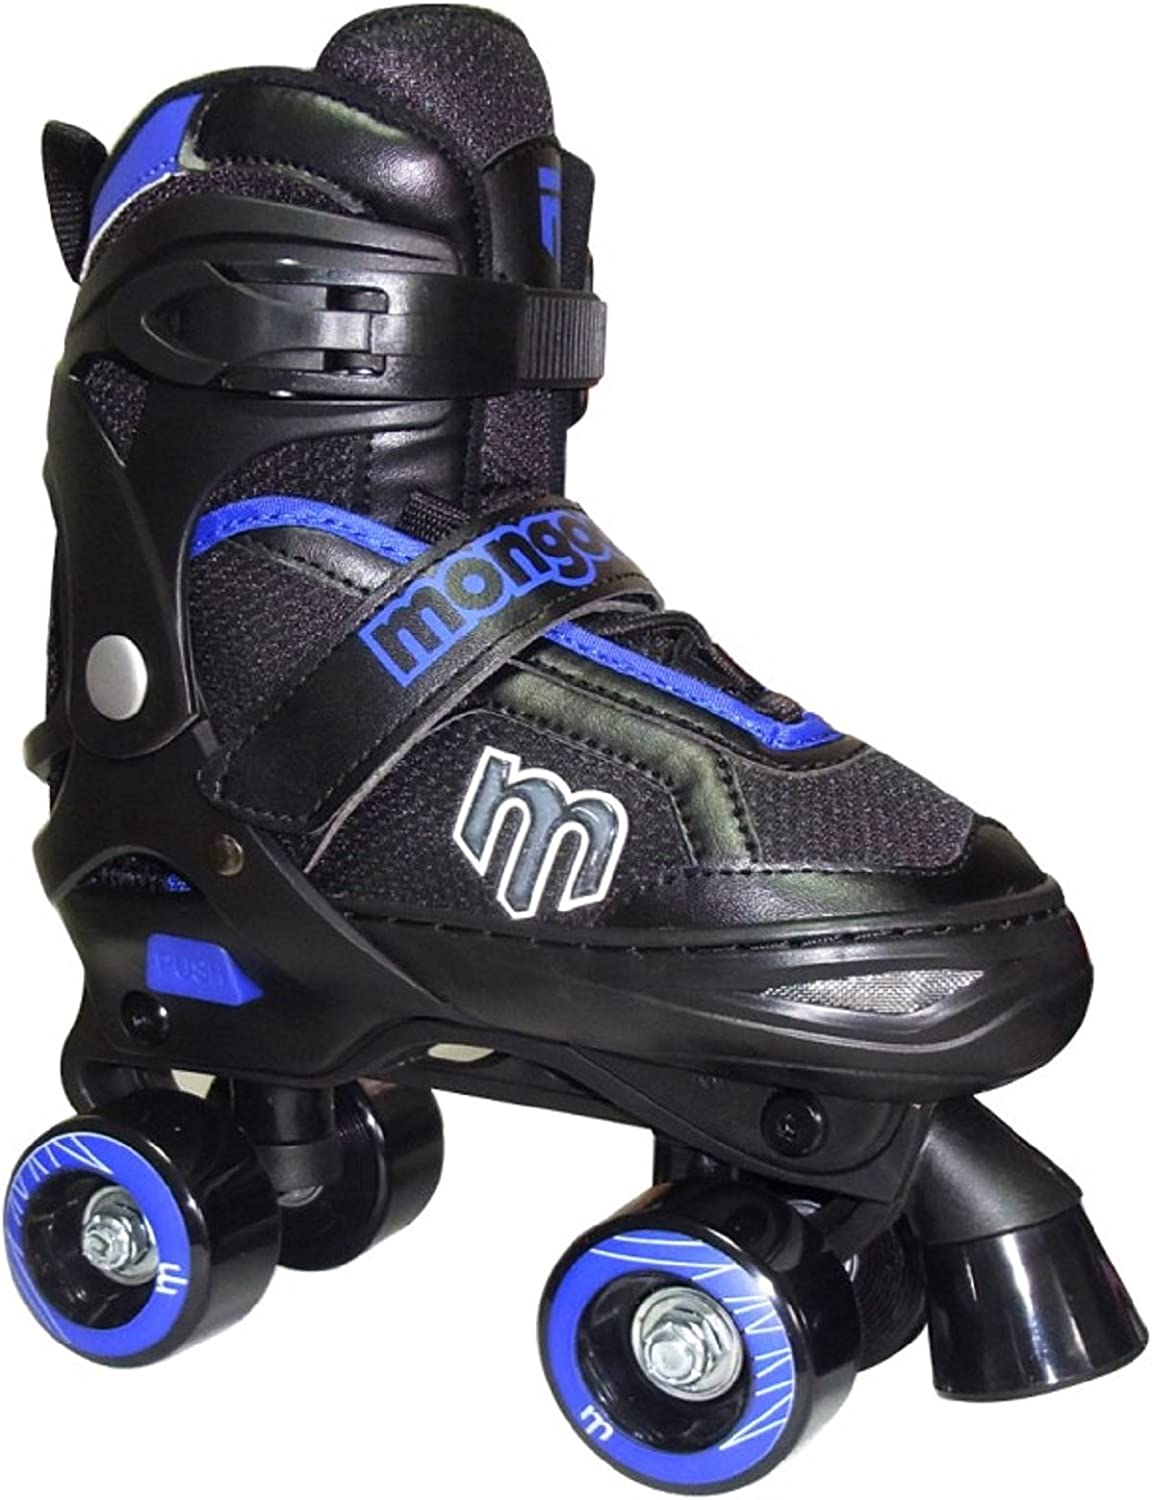 Mongoose Adjustable Quad Roller Skate- 青 and 黒- Sizes 1-4 by Mongoose